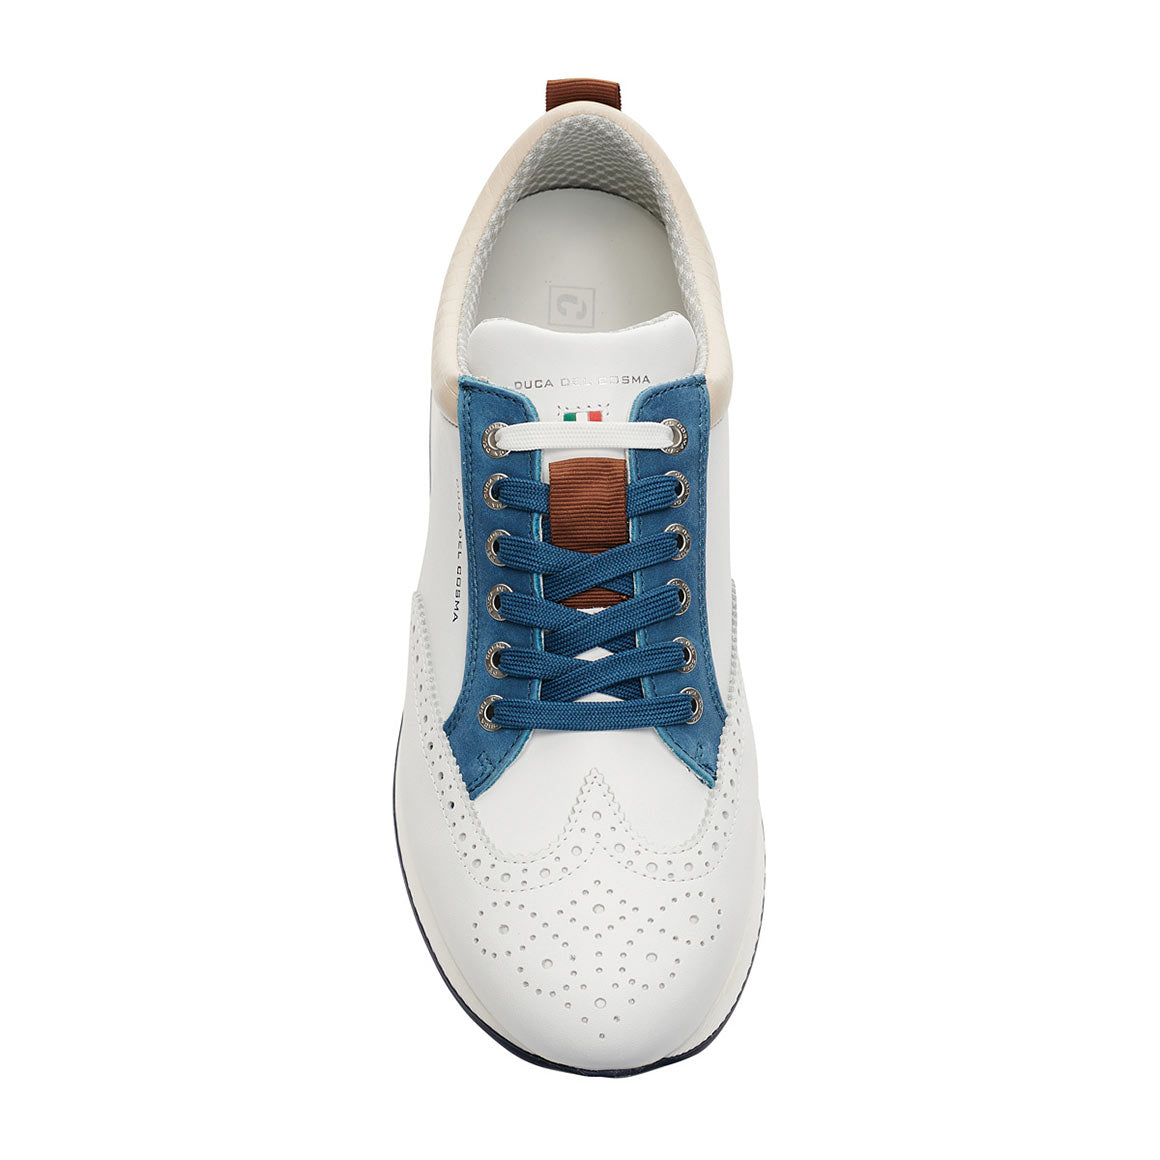 Men's Camelot White / Denim Golf Shoe